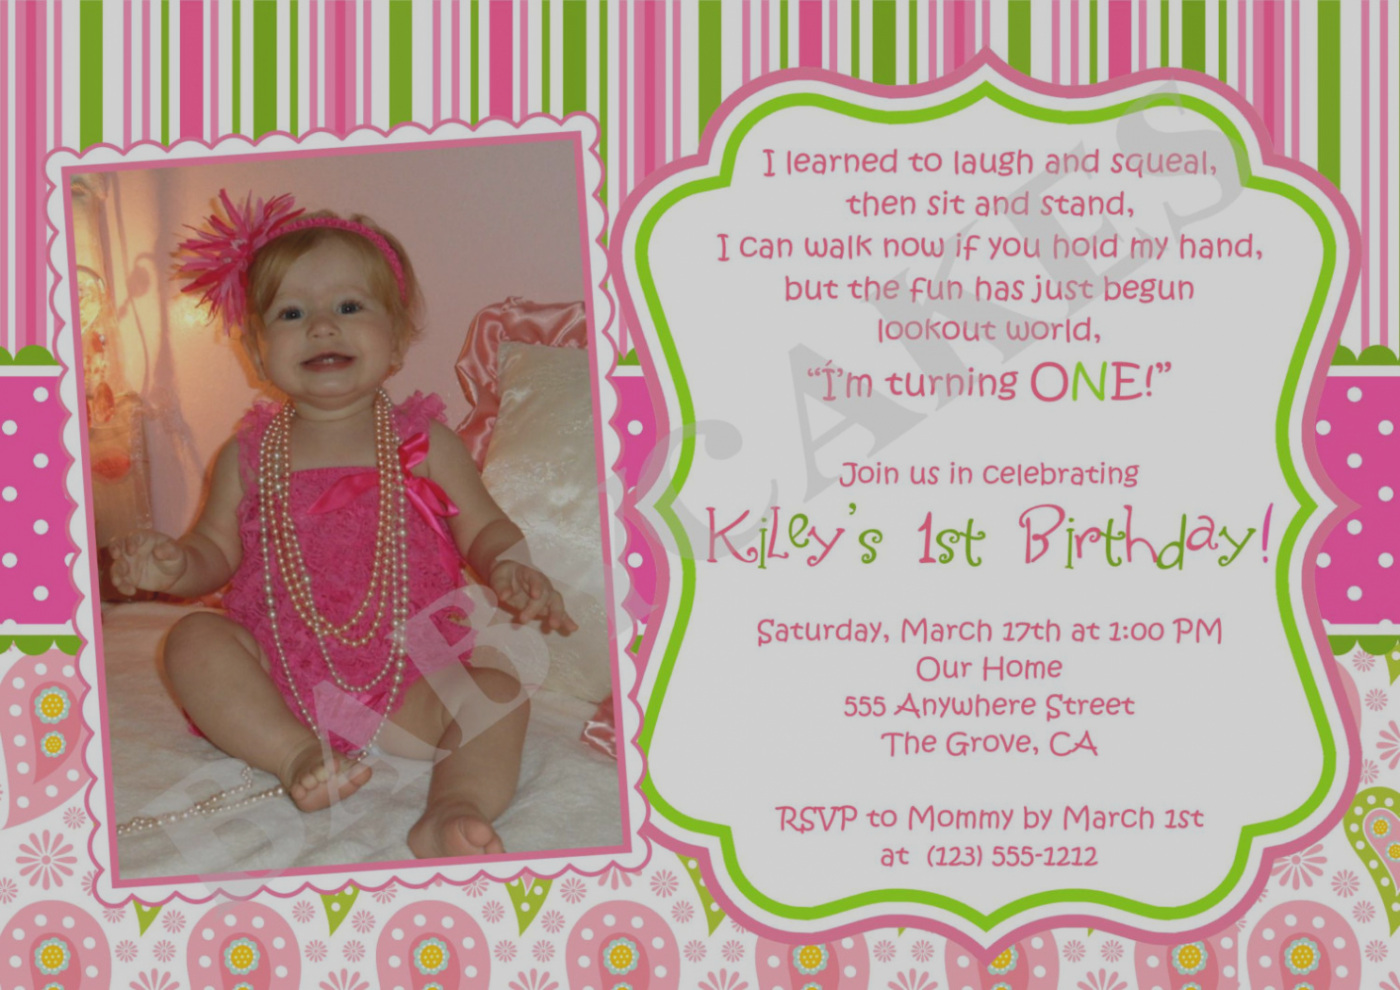 1st birthday butterfly invitation wording ; wonderful-butterfly-birthday-invitation-wording-japonnanesi-site-page-15